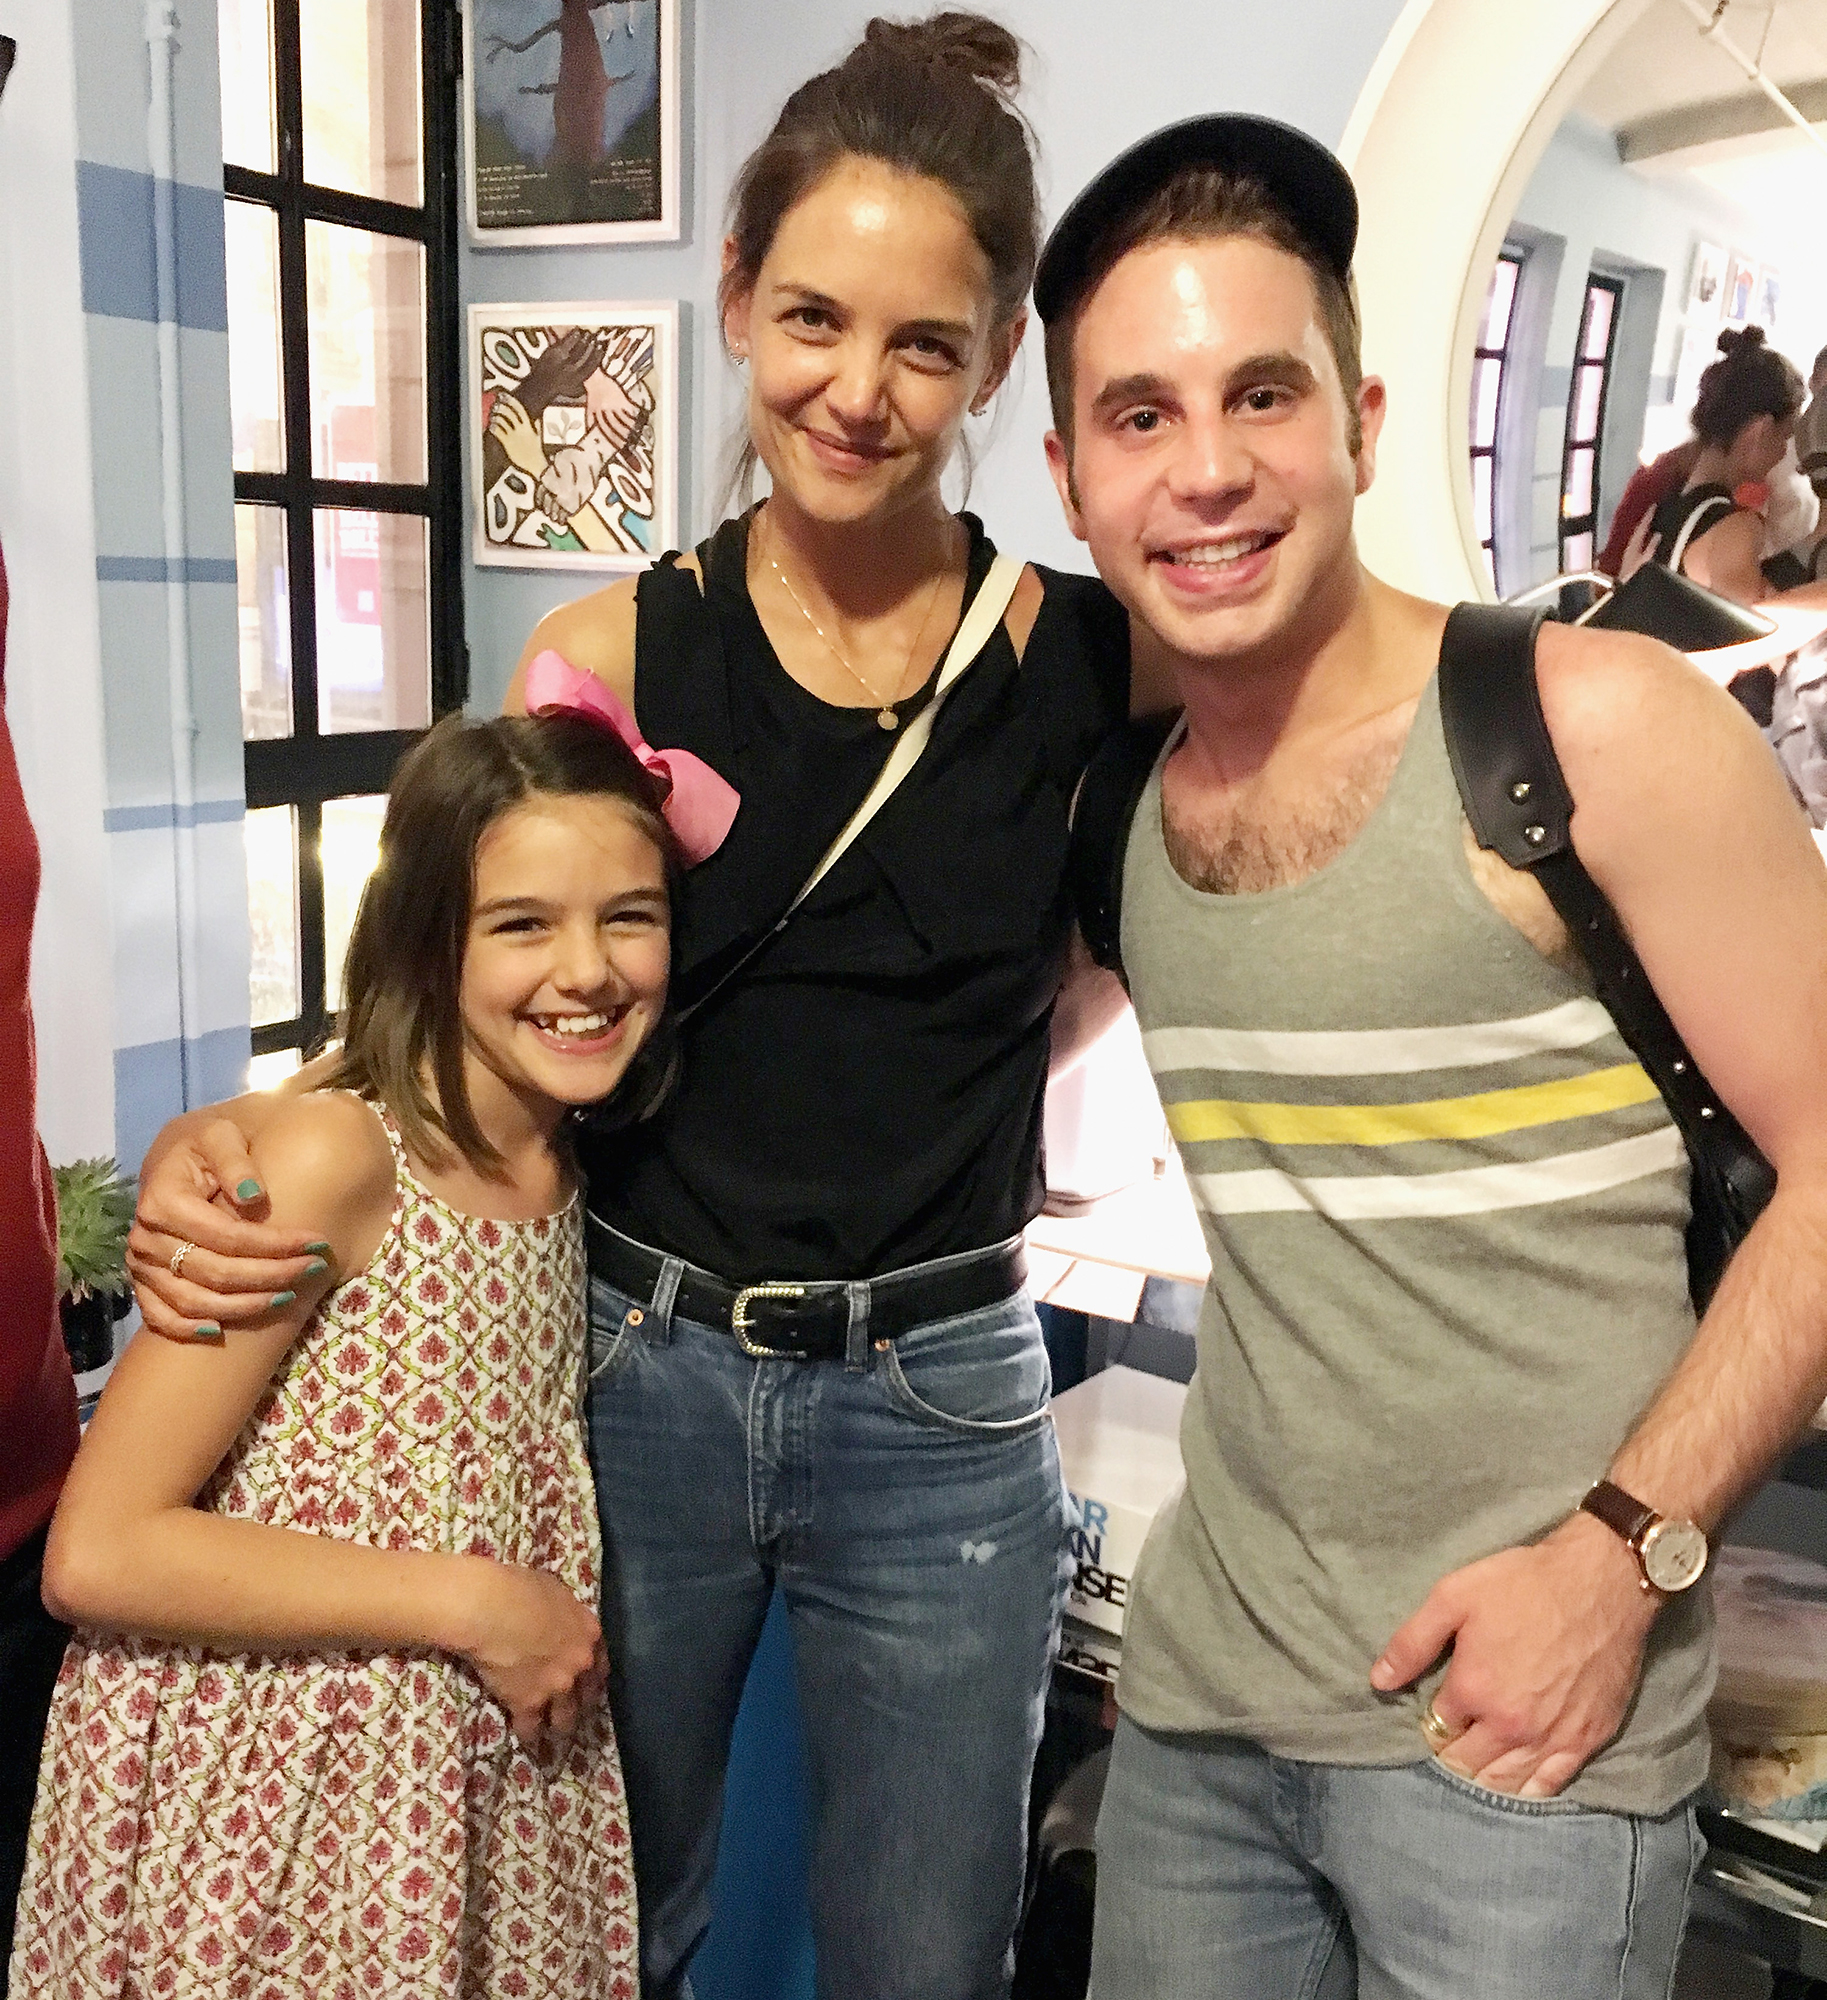 katie-holmes-suri-cruise-ben-platt-Broadway-Babes - In July 2017, Suri and her mom posed for a pic with Ben Platt backstage at the Broadway show Dear Evan Hansen .